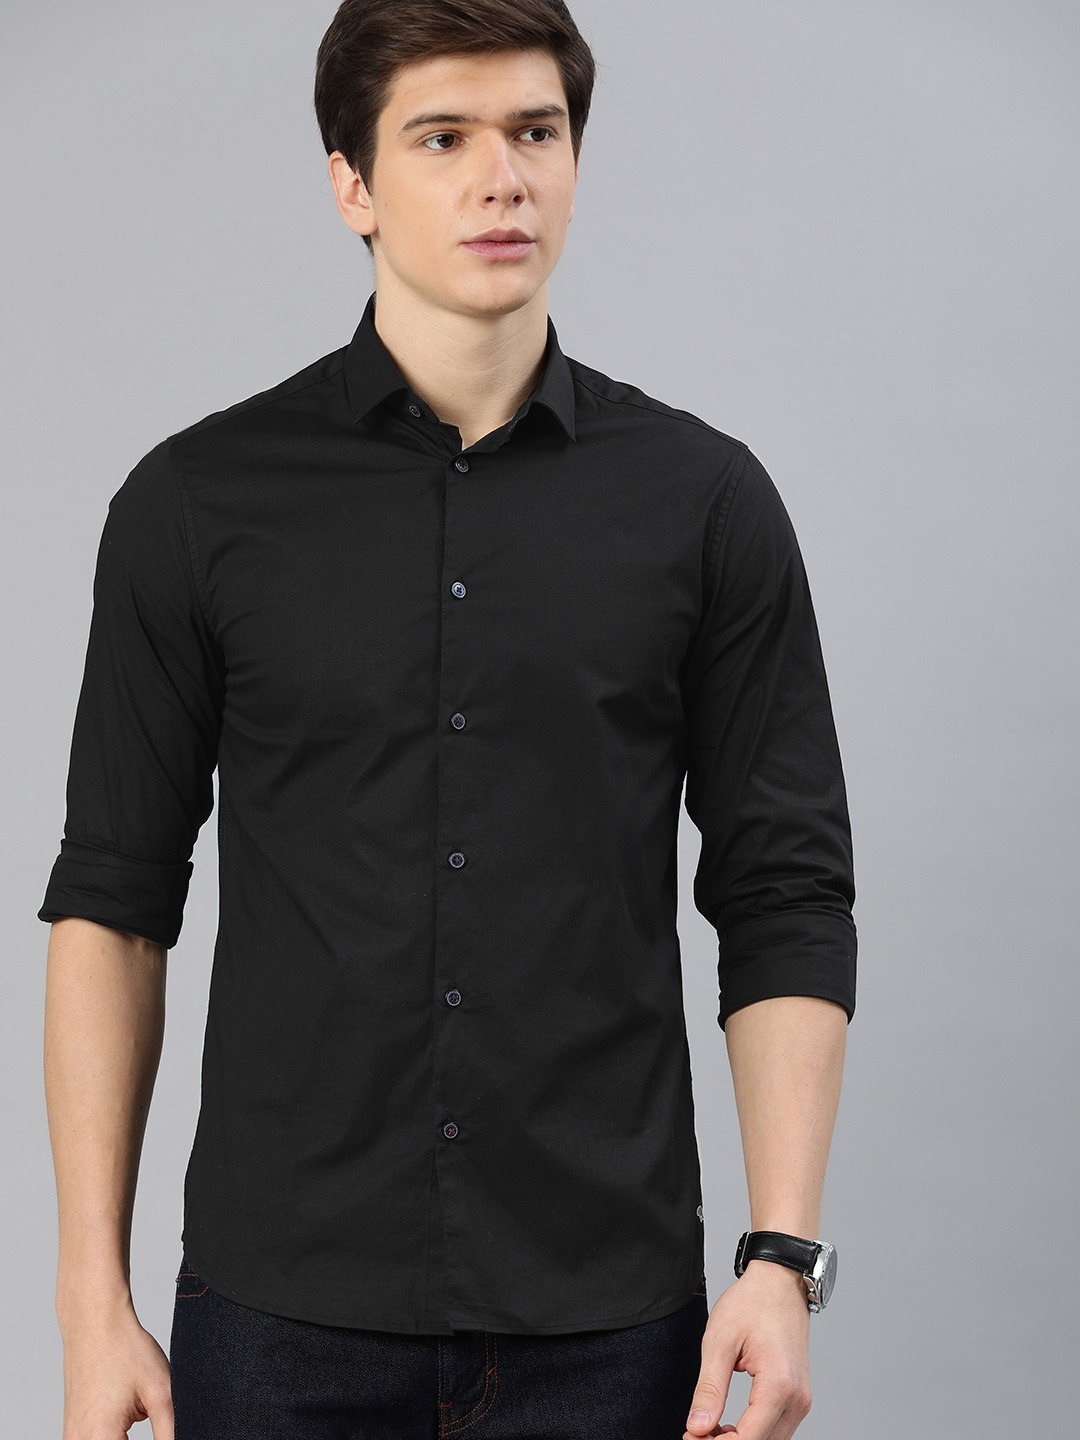 The Bear House   TBH Classic Formal Shirt